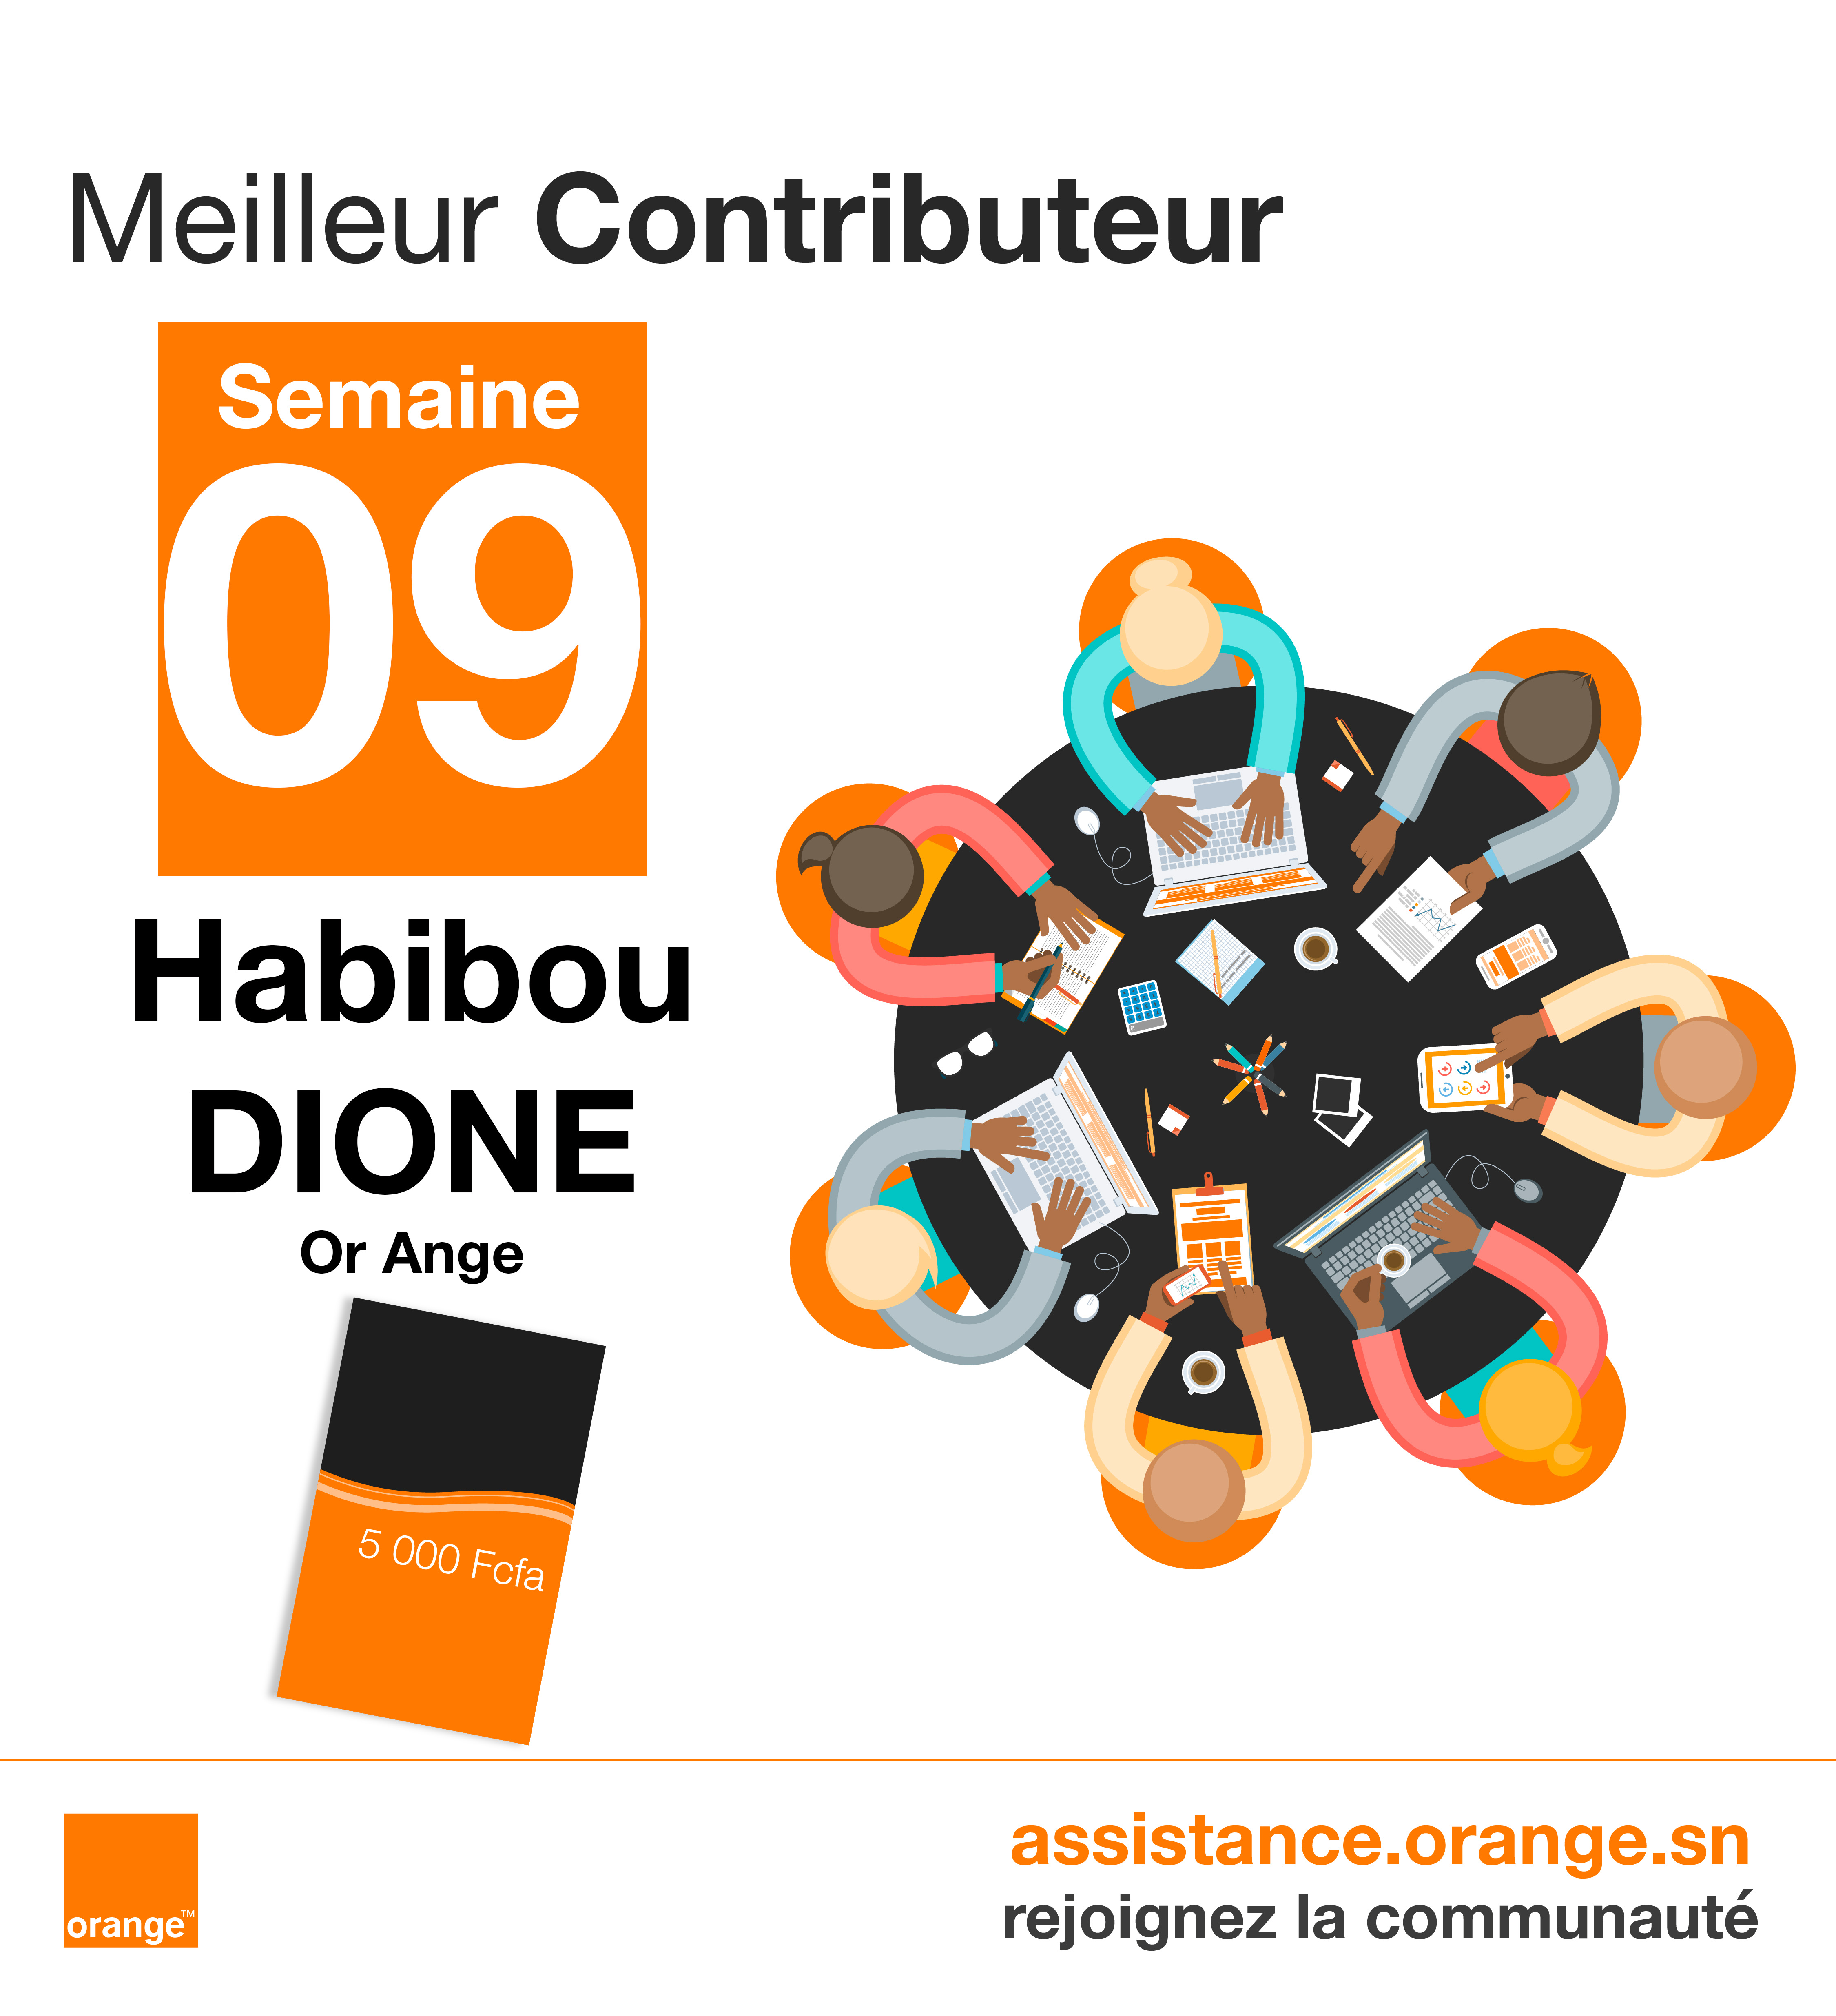 top contributeur semaine 09.jpg